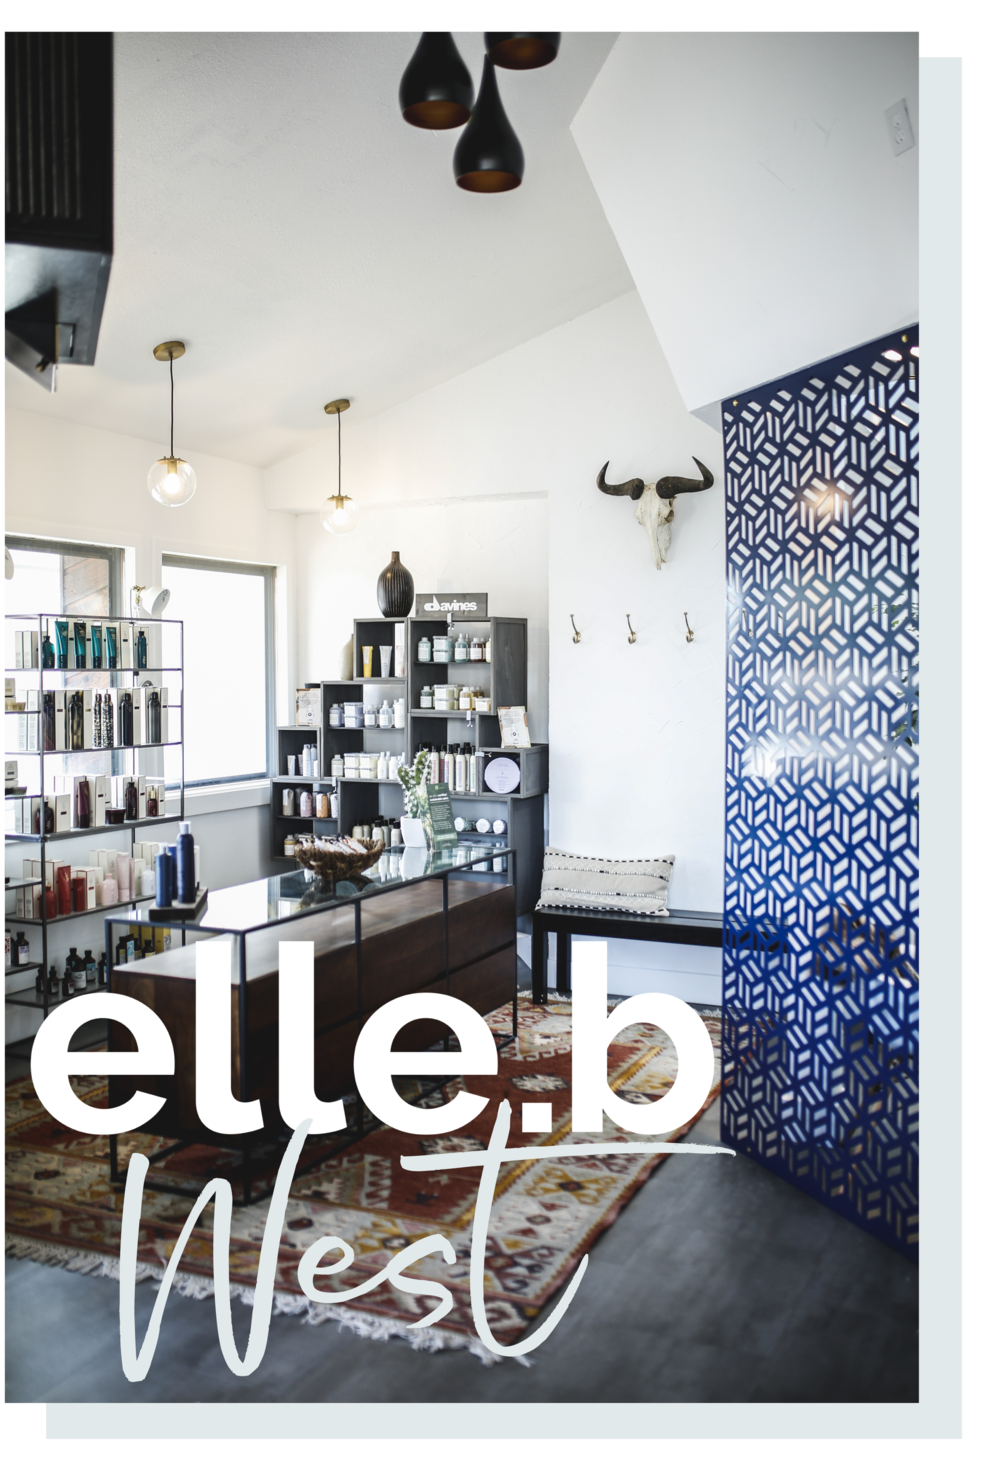 ELLE.B WEST - OUR NEWEST LOCATION OFFERING THE SAME GREAT SERVICES + TWO AESTHETIC PROVIDERS